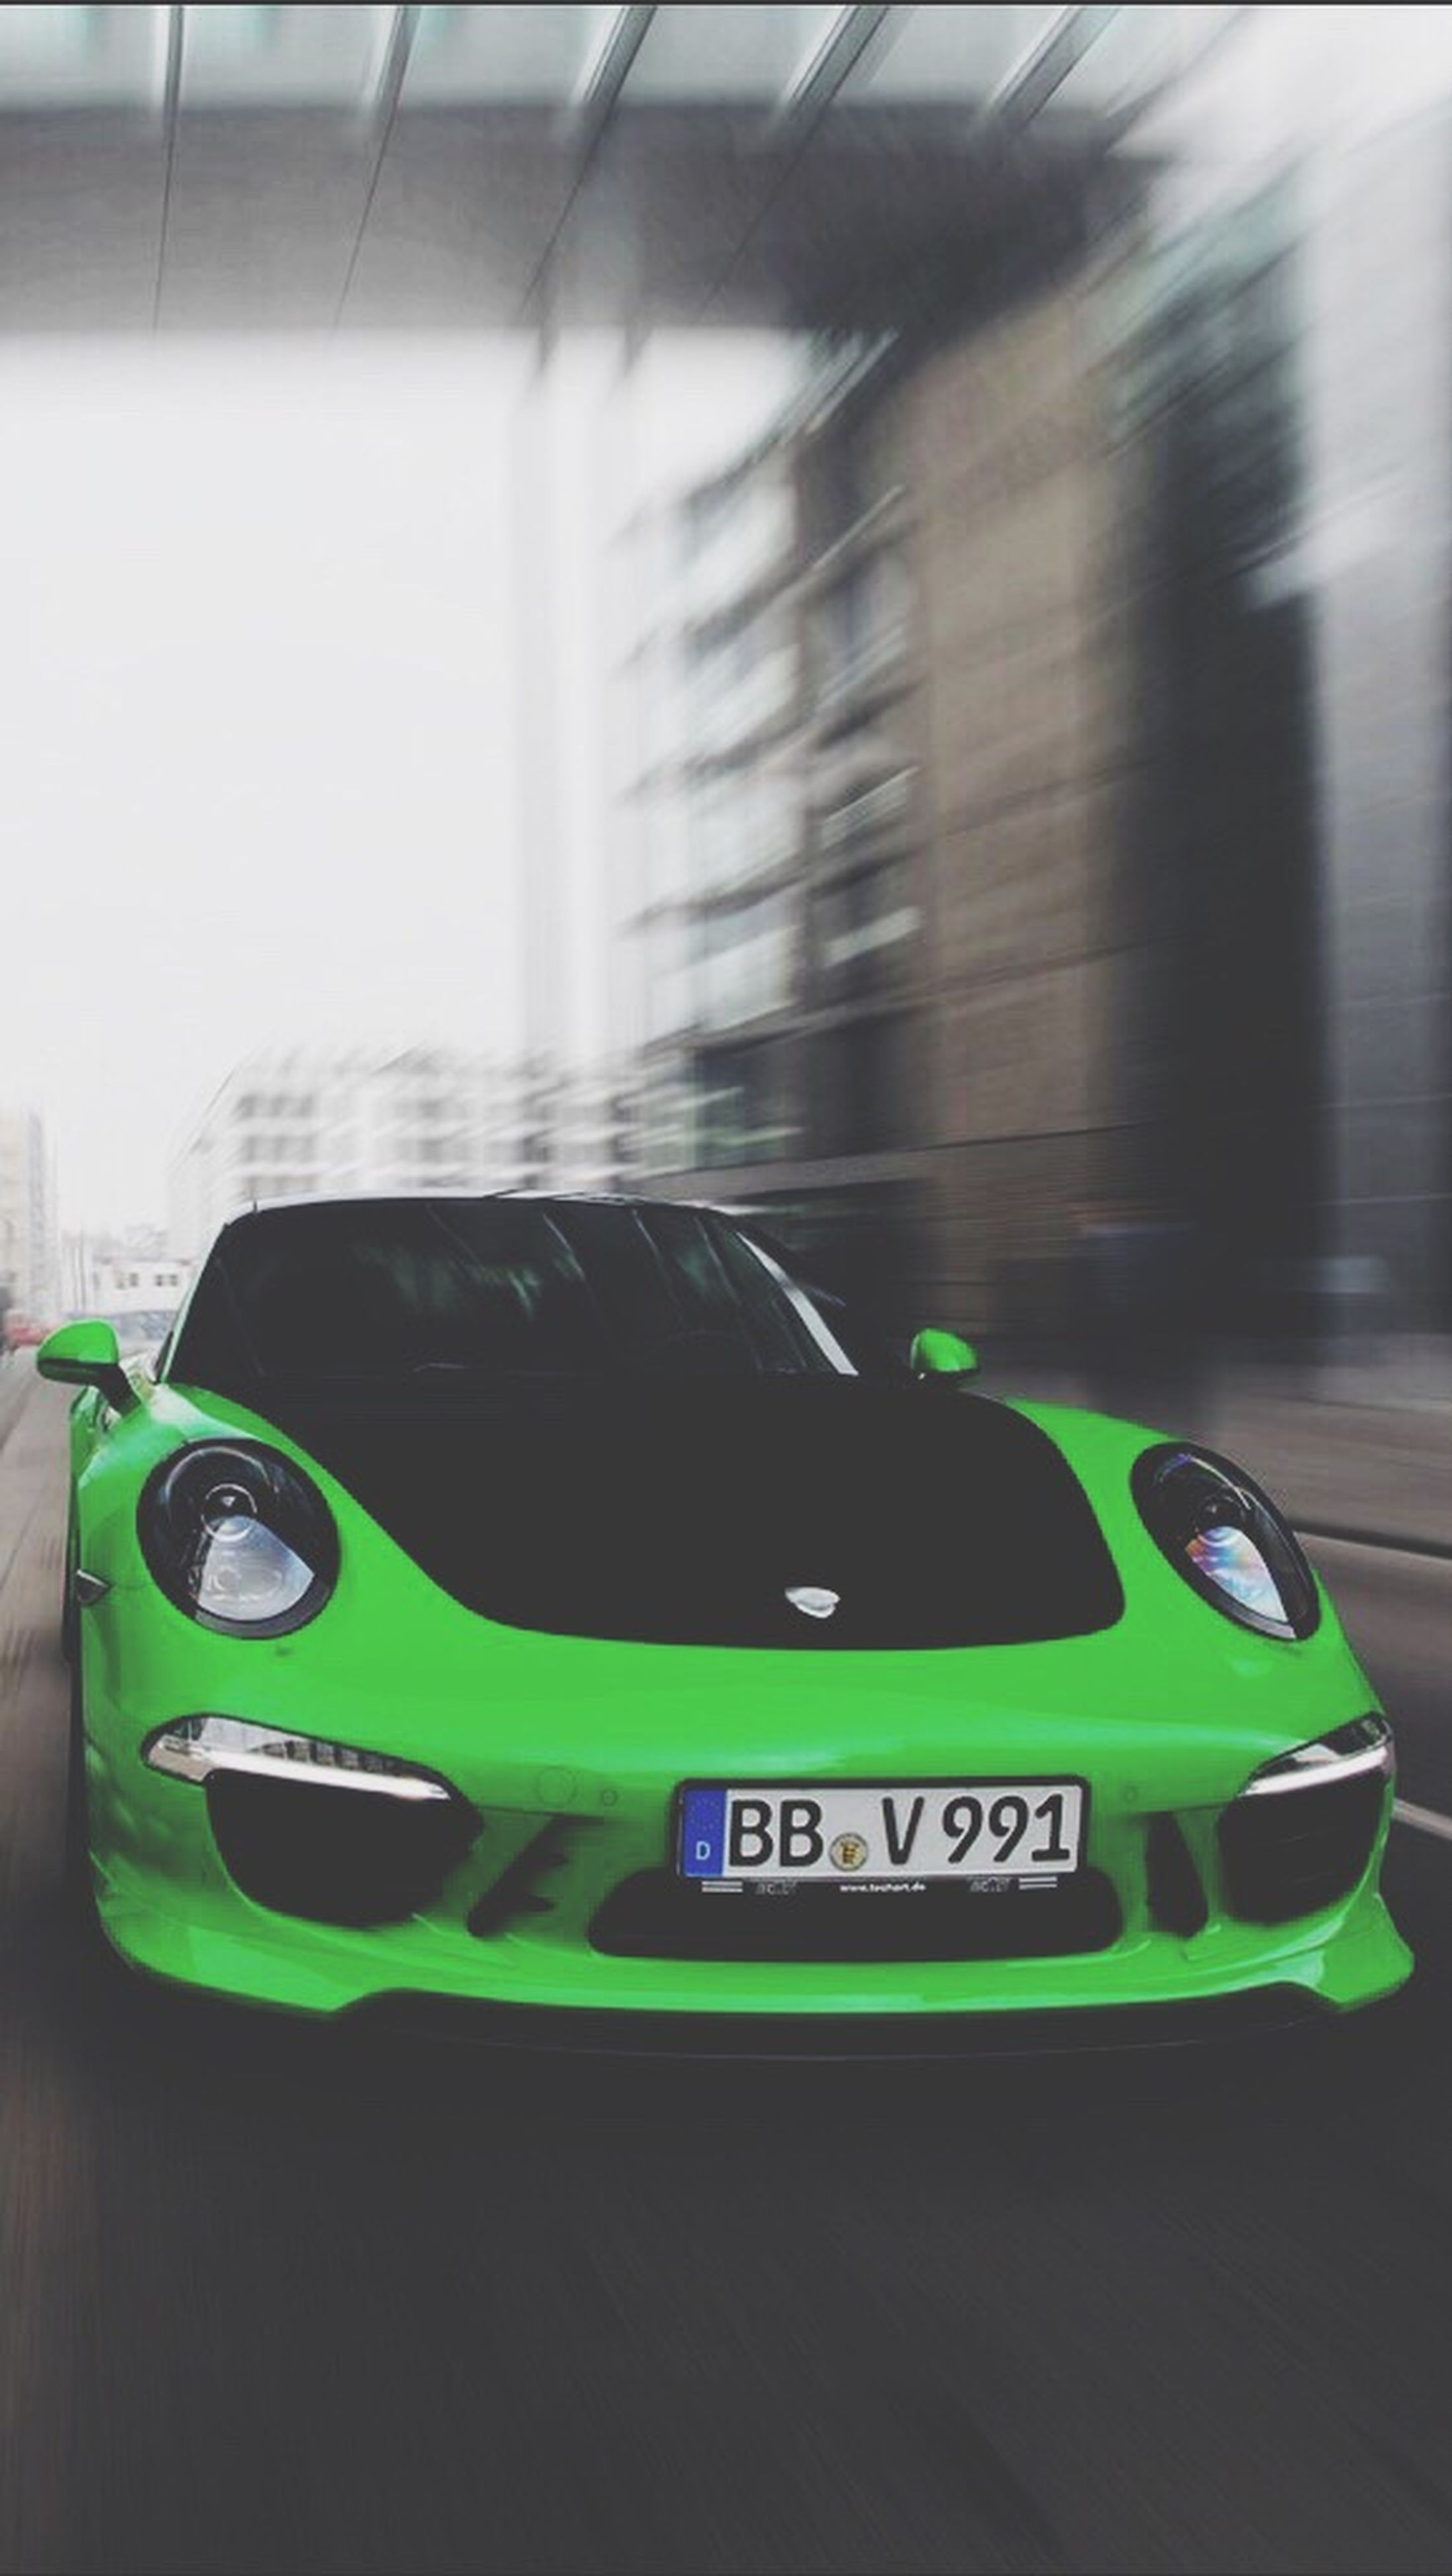 transportation, communication, land vehicle, mode of transport, text, car, western script, indoors, close-up, number, no people, green color, blurred motion, day, speed, road, street, reflection, travel, technology